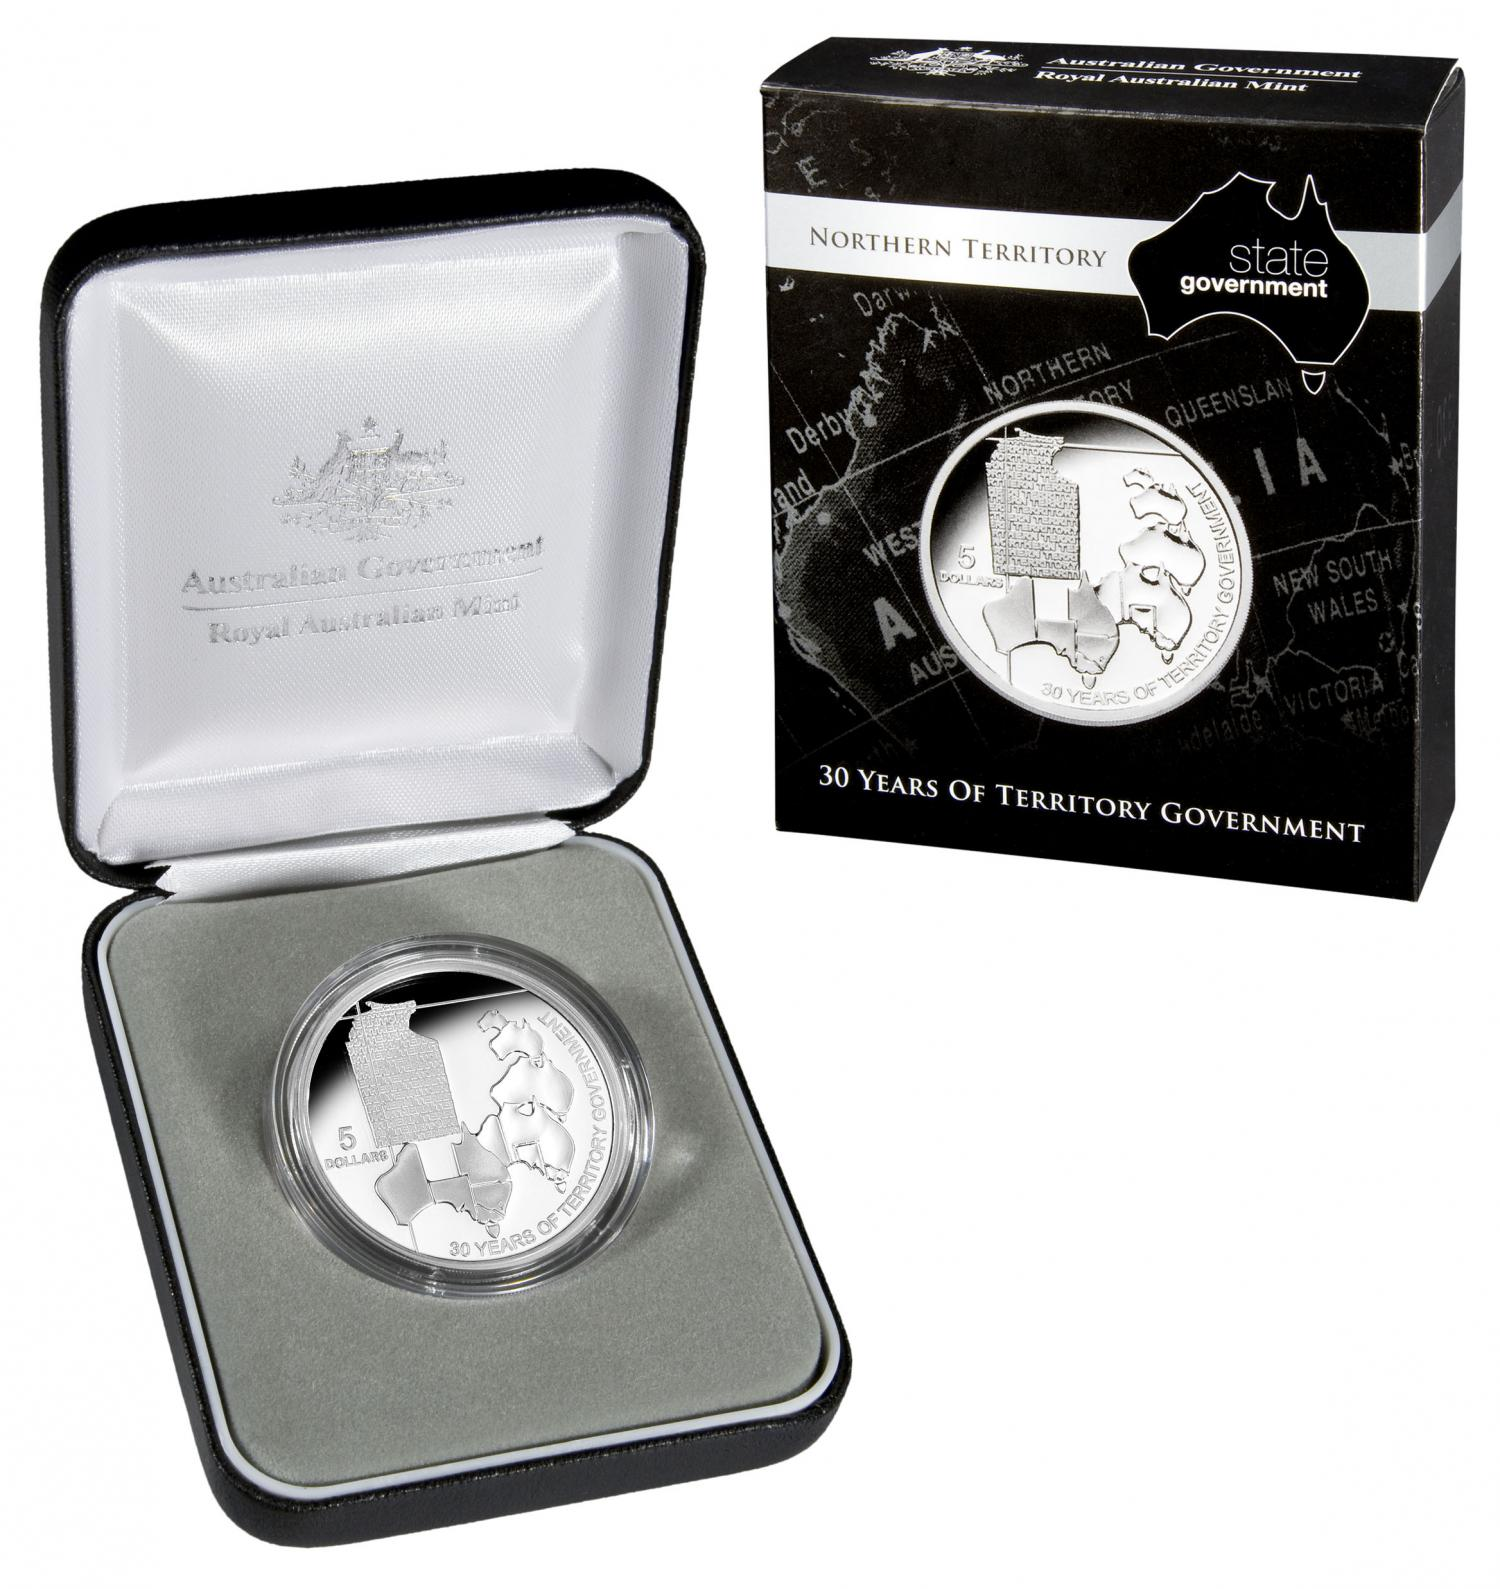 Thumbnail for 2008 $5.00 Silver Proof Northern Territory 30 Years of Territory Government